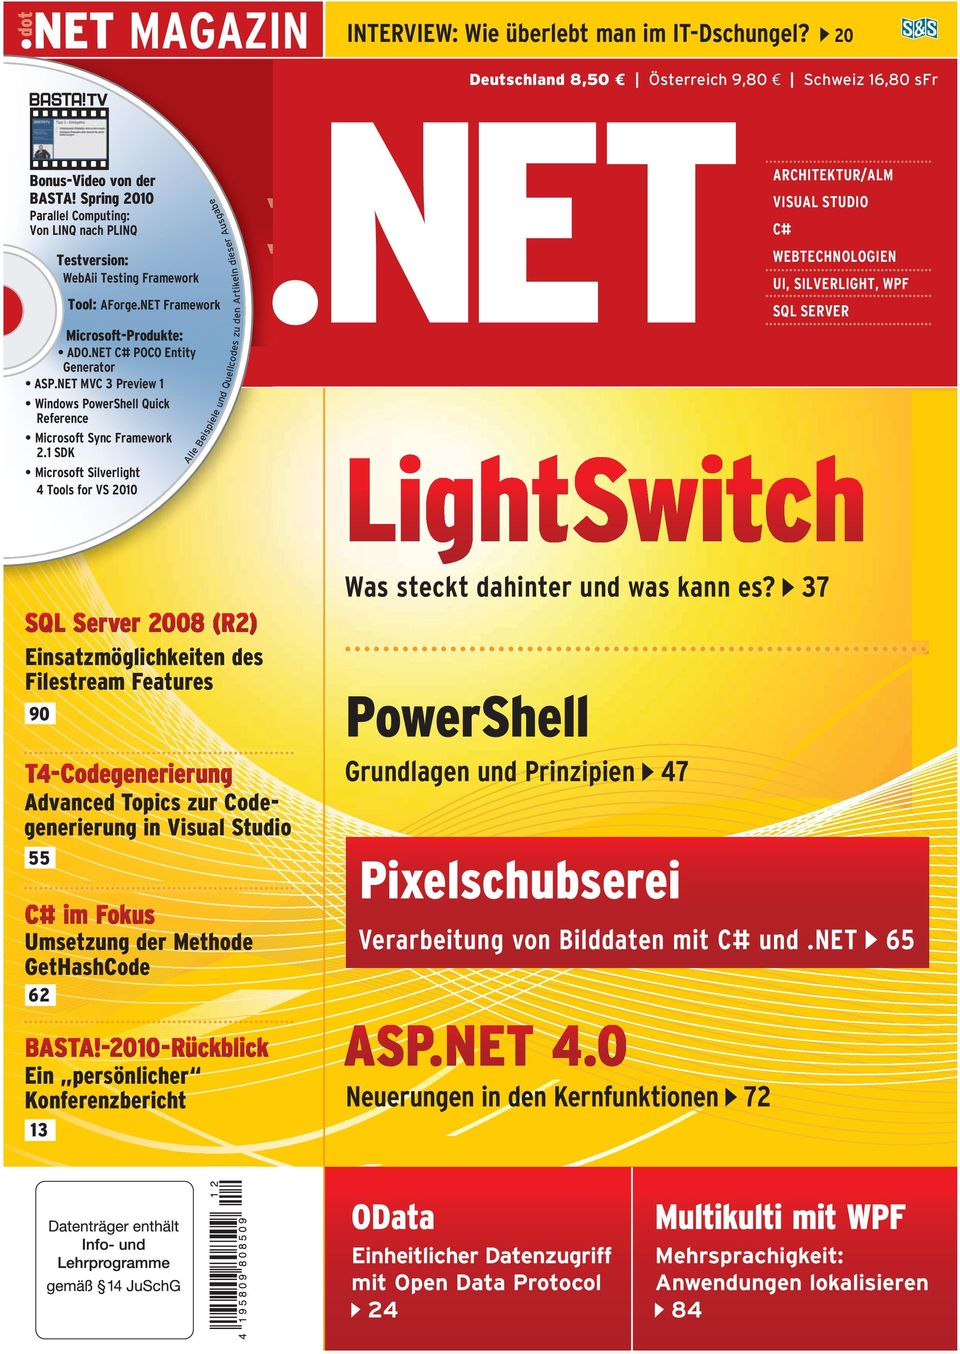 NET C# POCO Entity Generator ASP.NET MVC 3 Preview 1 Windows PowerShell Quick Reference Microsoft Sync Framework 2.1 SDK Microsoft Silverlight 4 Tools for VS 2010 Quel lcod LightSwitch.